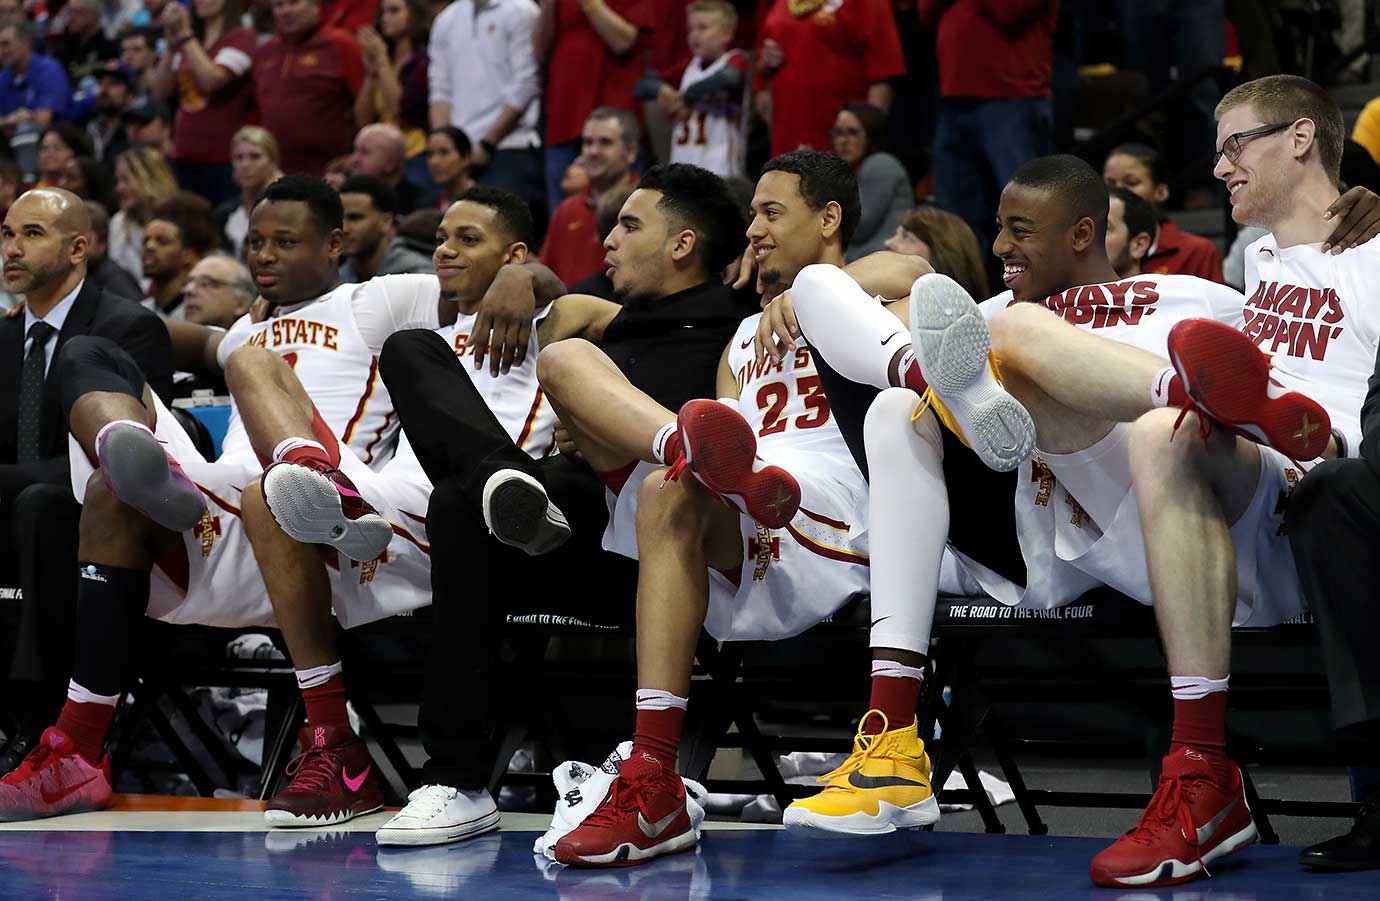 The Iowa State bench was in a joking mood in a blowout win over Arkansas Little Rock.